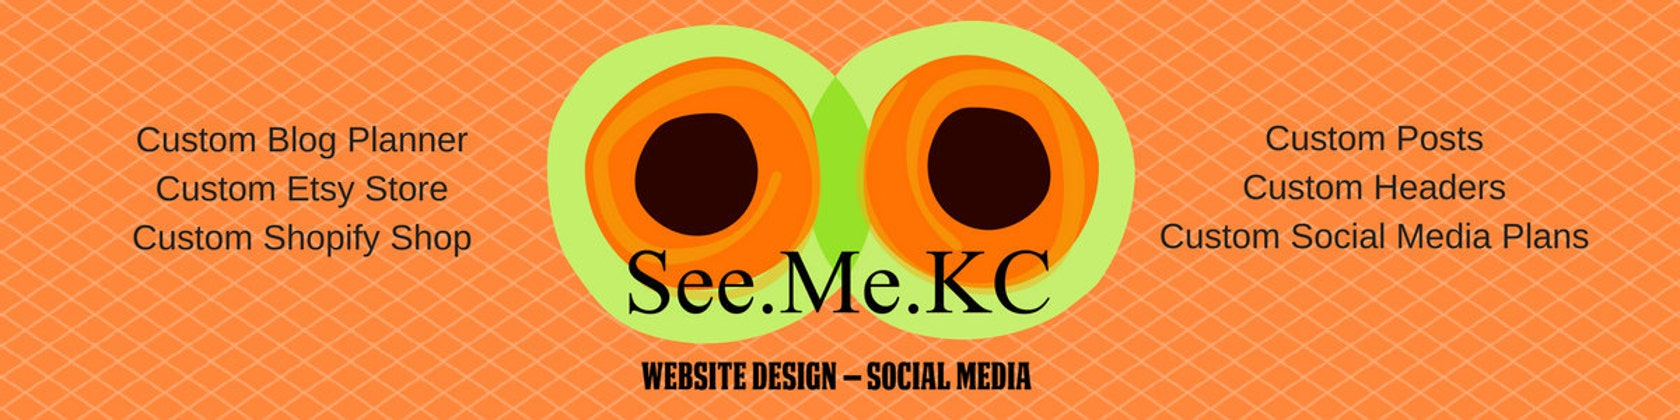 SeeMeKC Web Designs and Custom creations for the web  by SeeMeKC